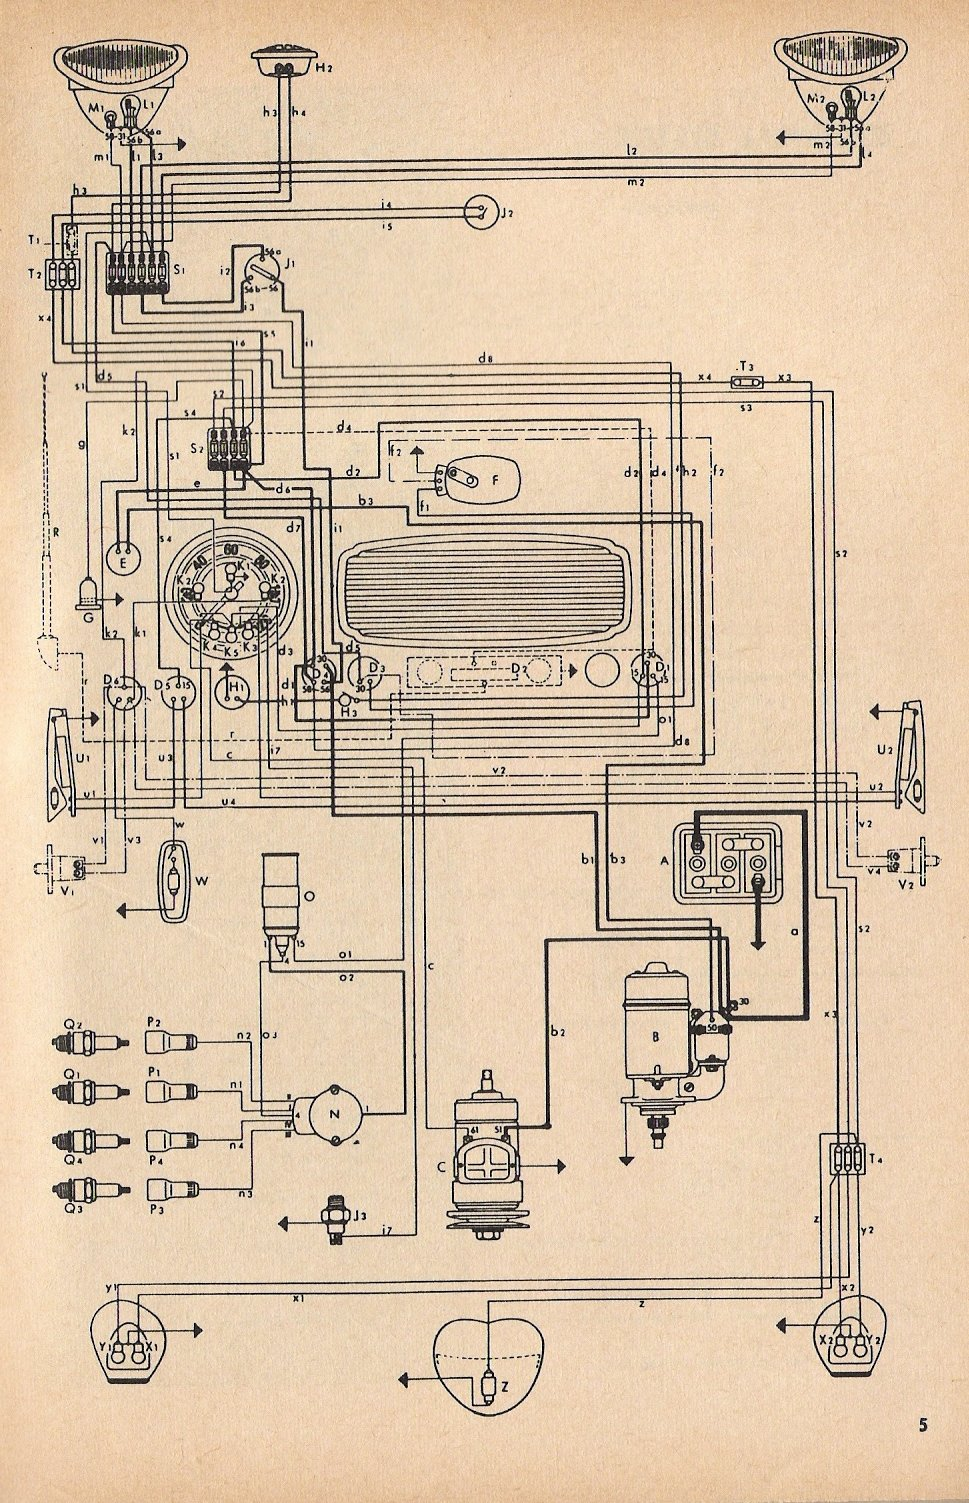 bug_todec53 1952 53 beetle wiring diagram thegoldenbug com 1957 vw bug wiring diagram at edmiracle.co